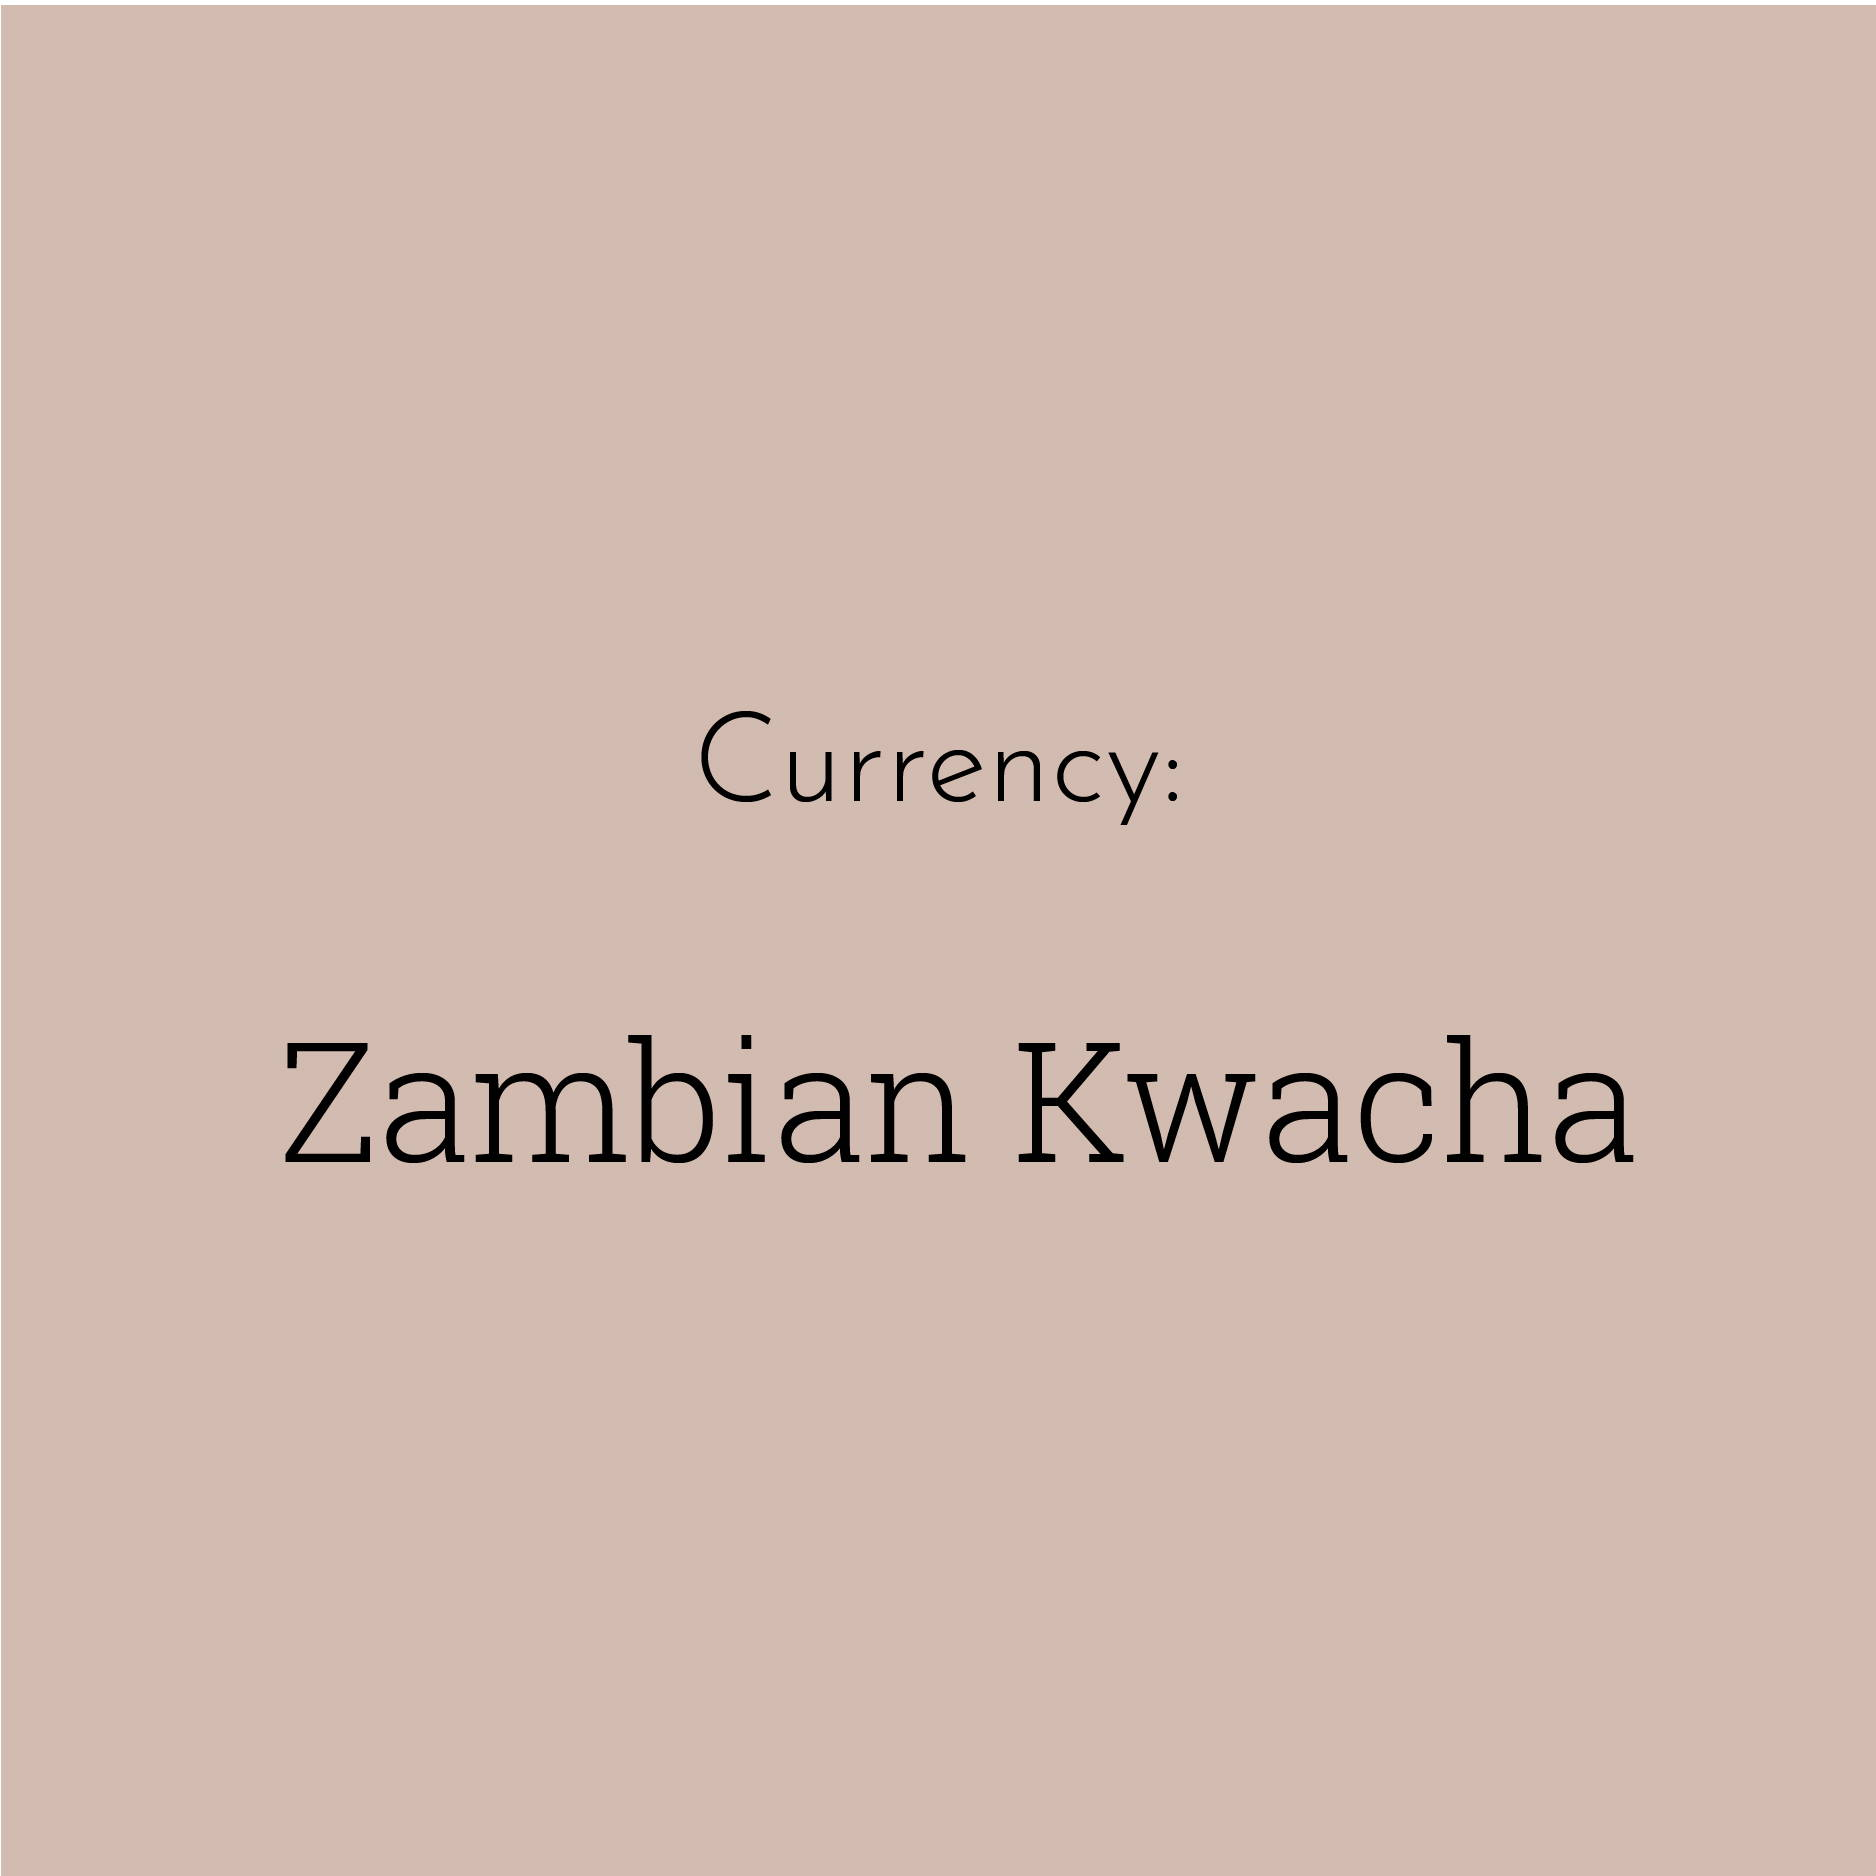 "A solid brown block contains the text ""Currency: Zambian Kwacha"""